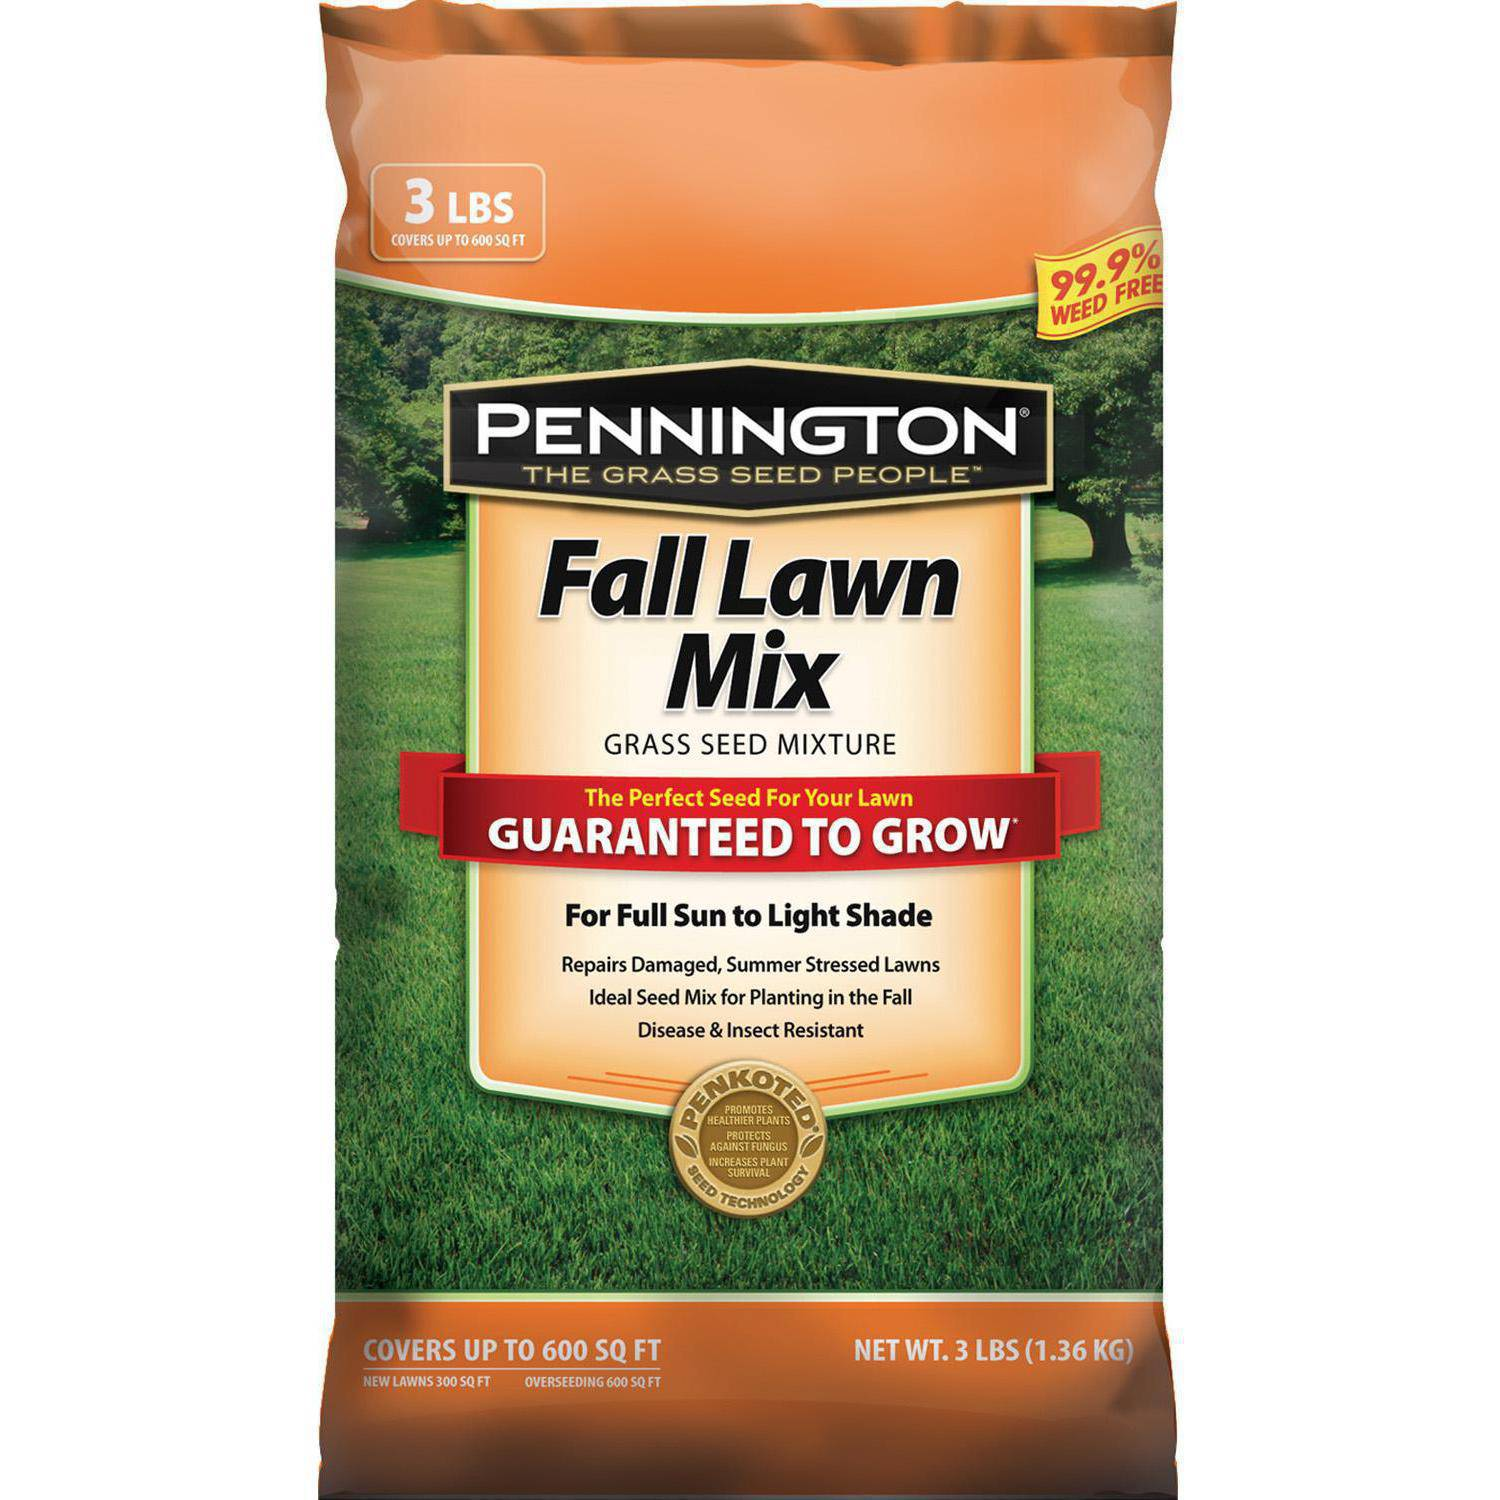 Pennington 3 Lb Pe Fall Lawn Mixture C